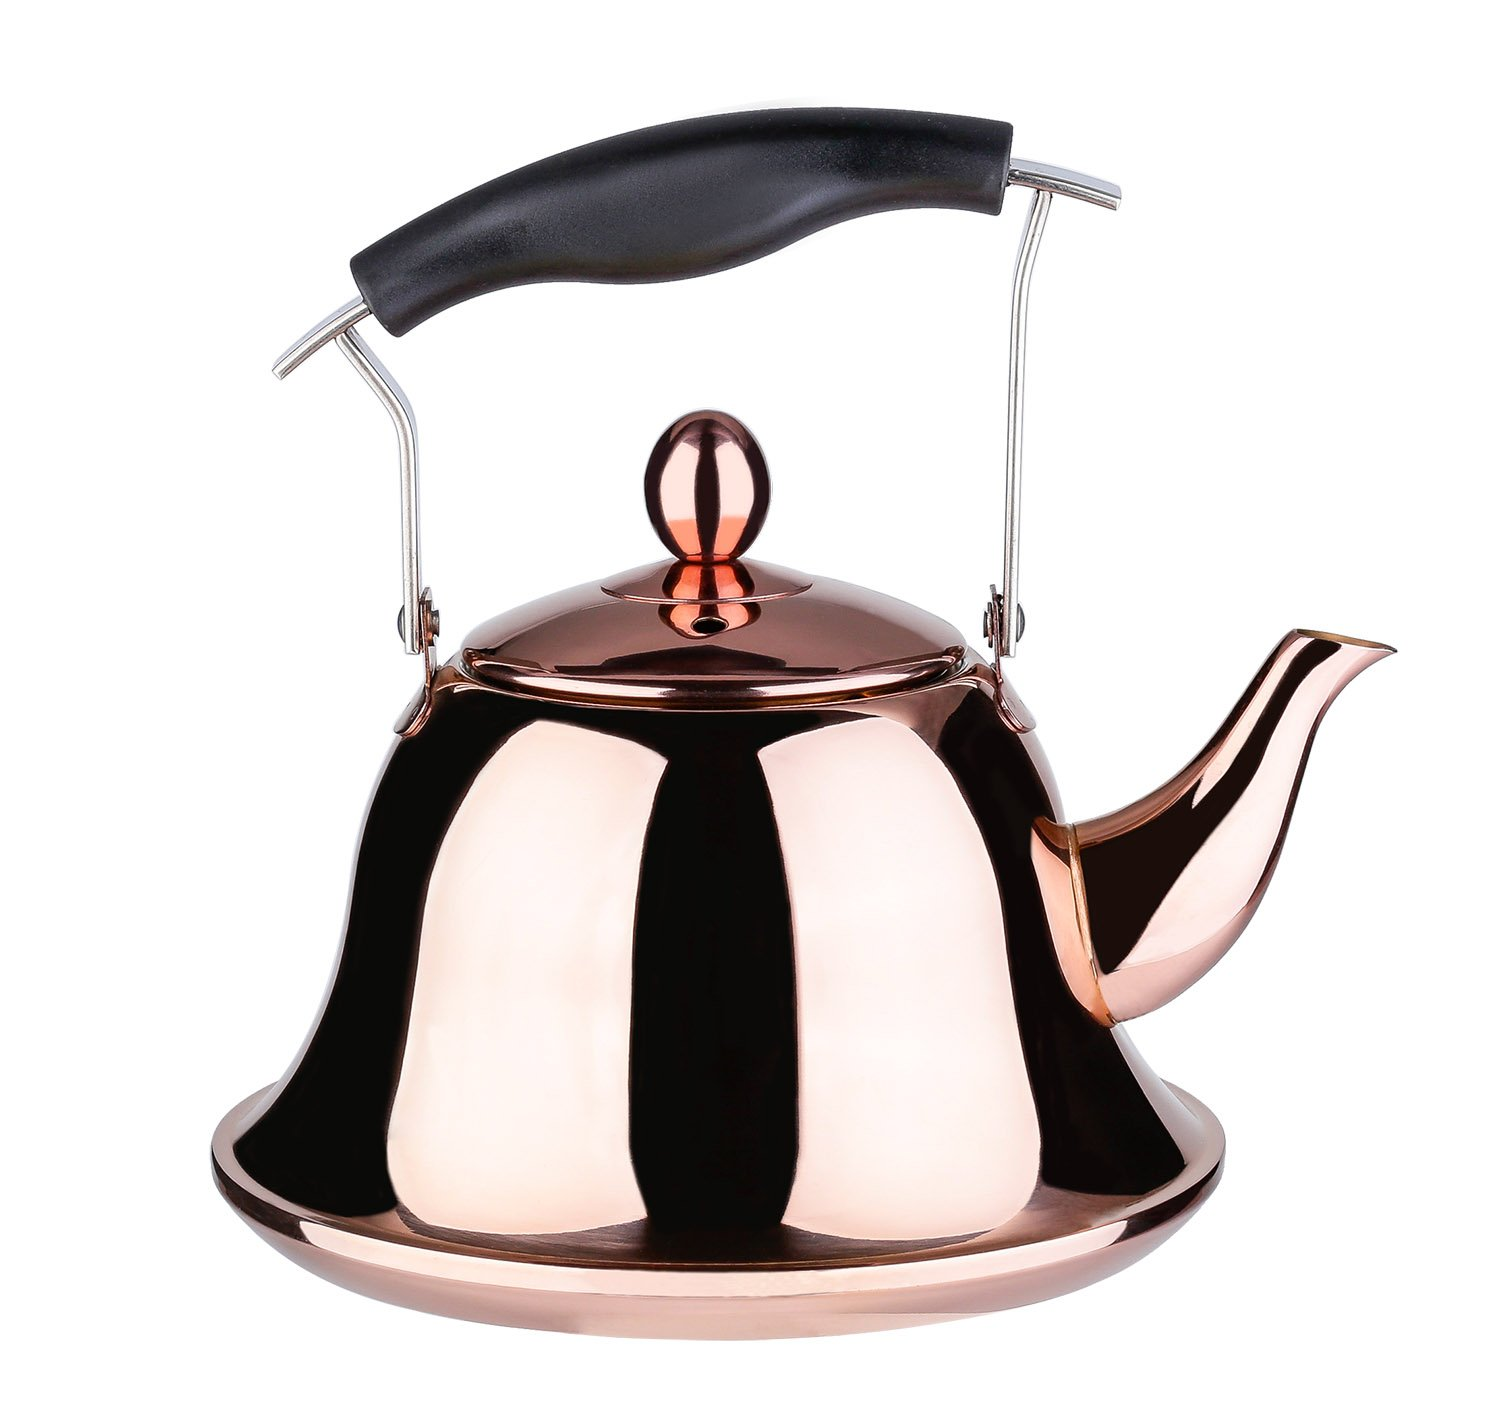 Onlycooker Whistling Tea Kettle Stainless Steel Stovetop Teakettle Sturdy Teapot for Tea Coffee Fast Boiling with Infuser Mirror Finish 2 Liter / 2.1 Quart (Rose Gold) by Onlycooker (Image #1)